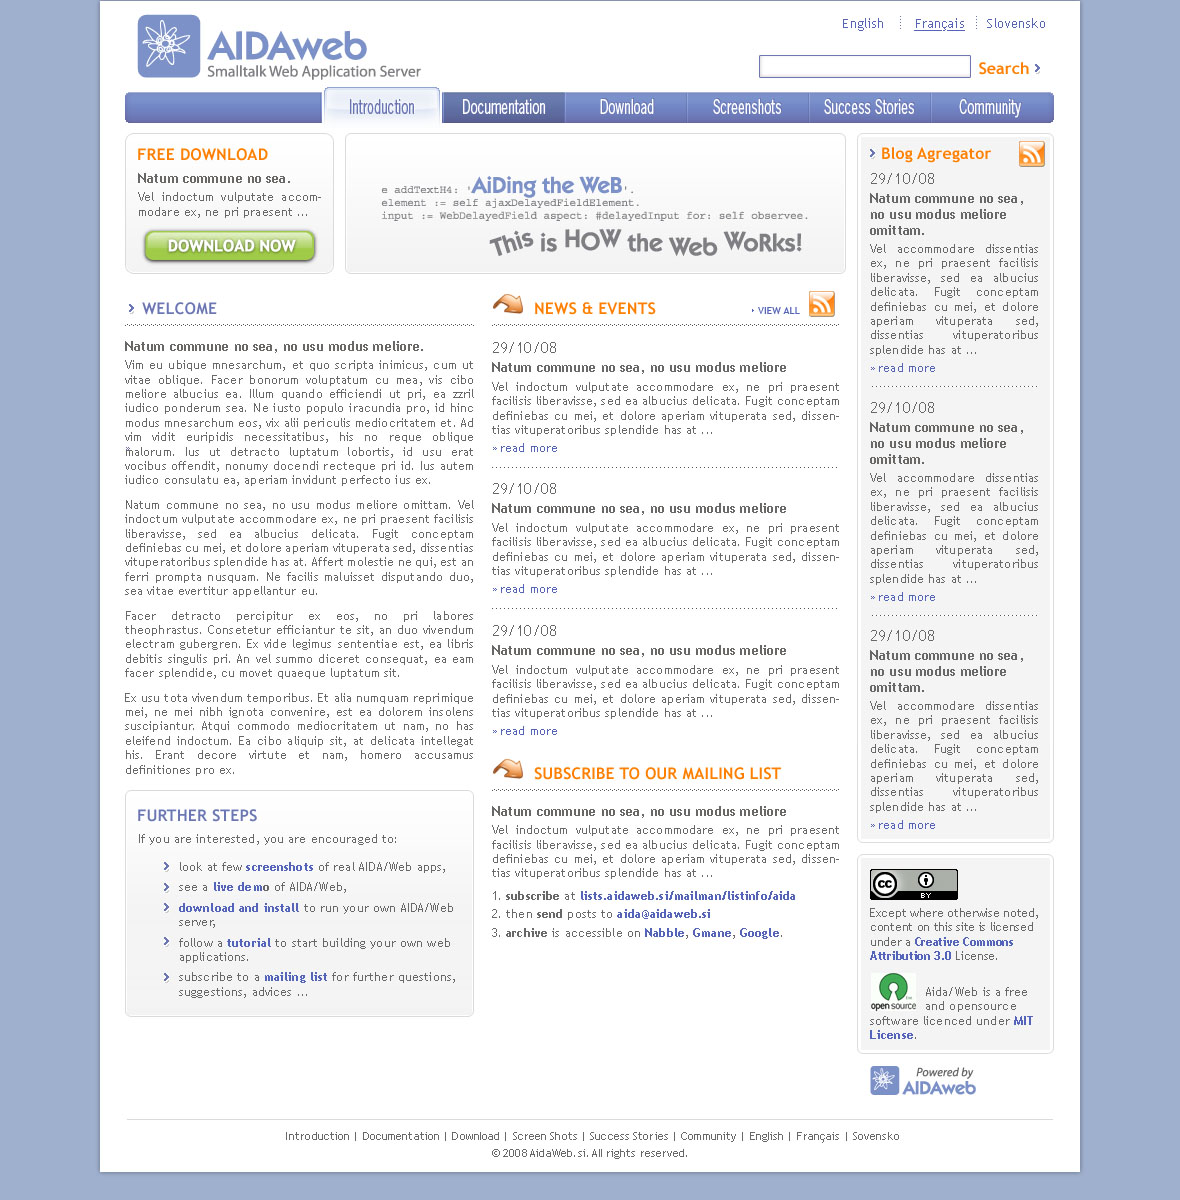 Aida/Web site first page design